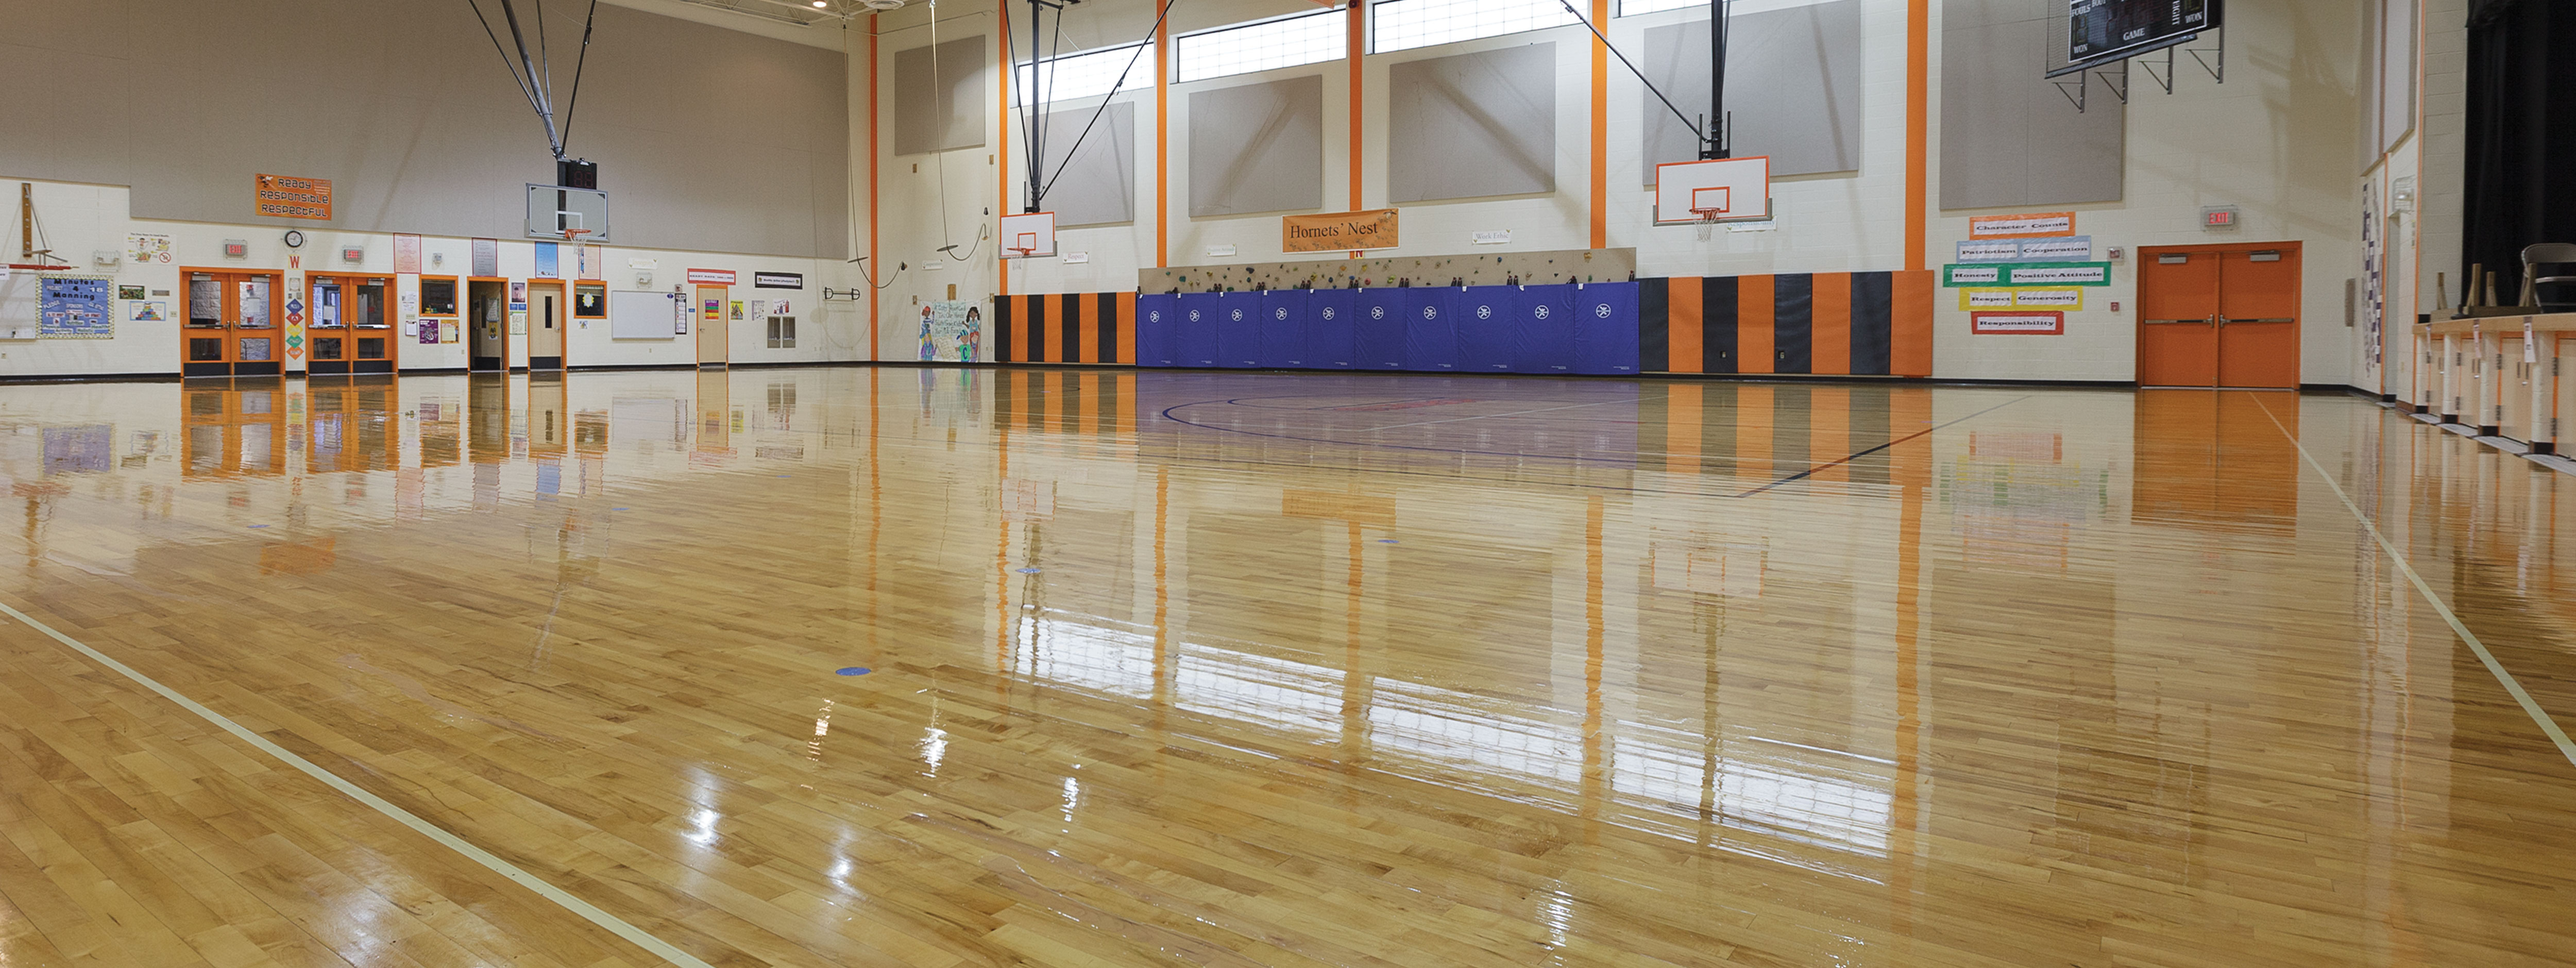 Buckeye Reflections Wood Floor Care Program in Schools